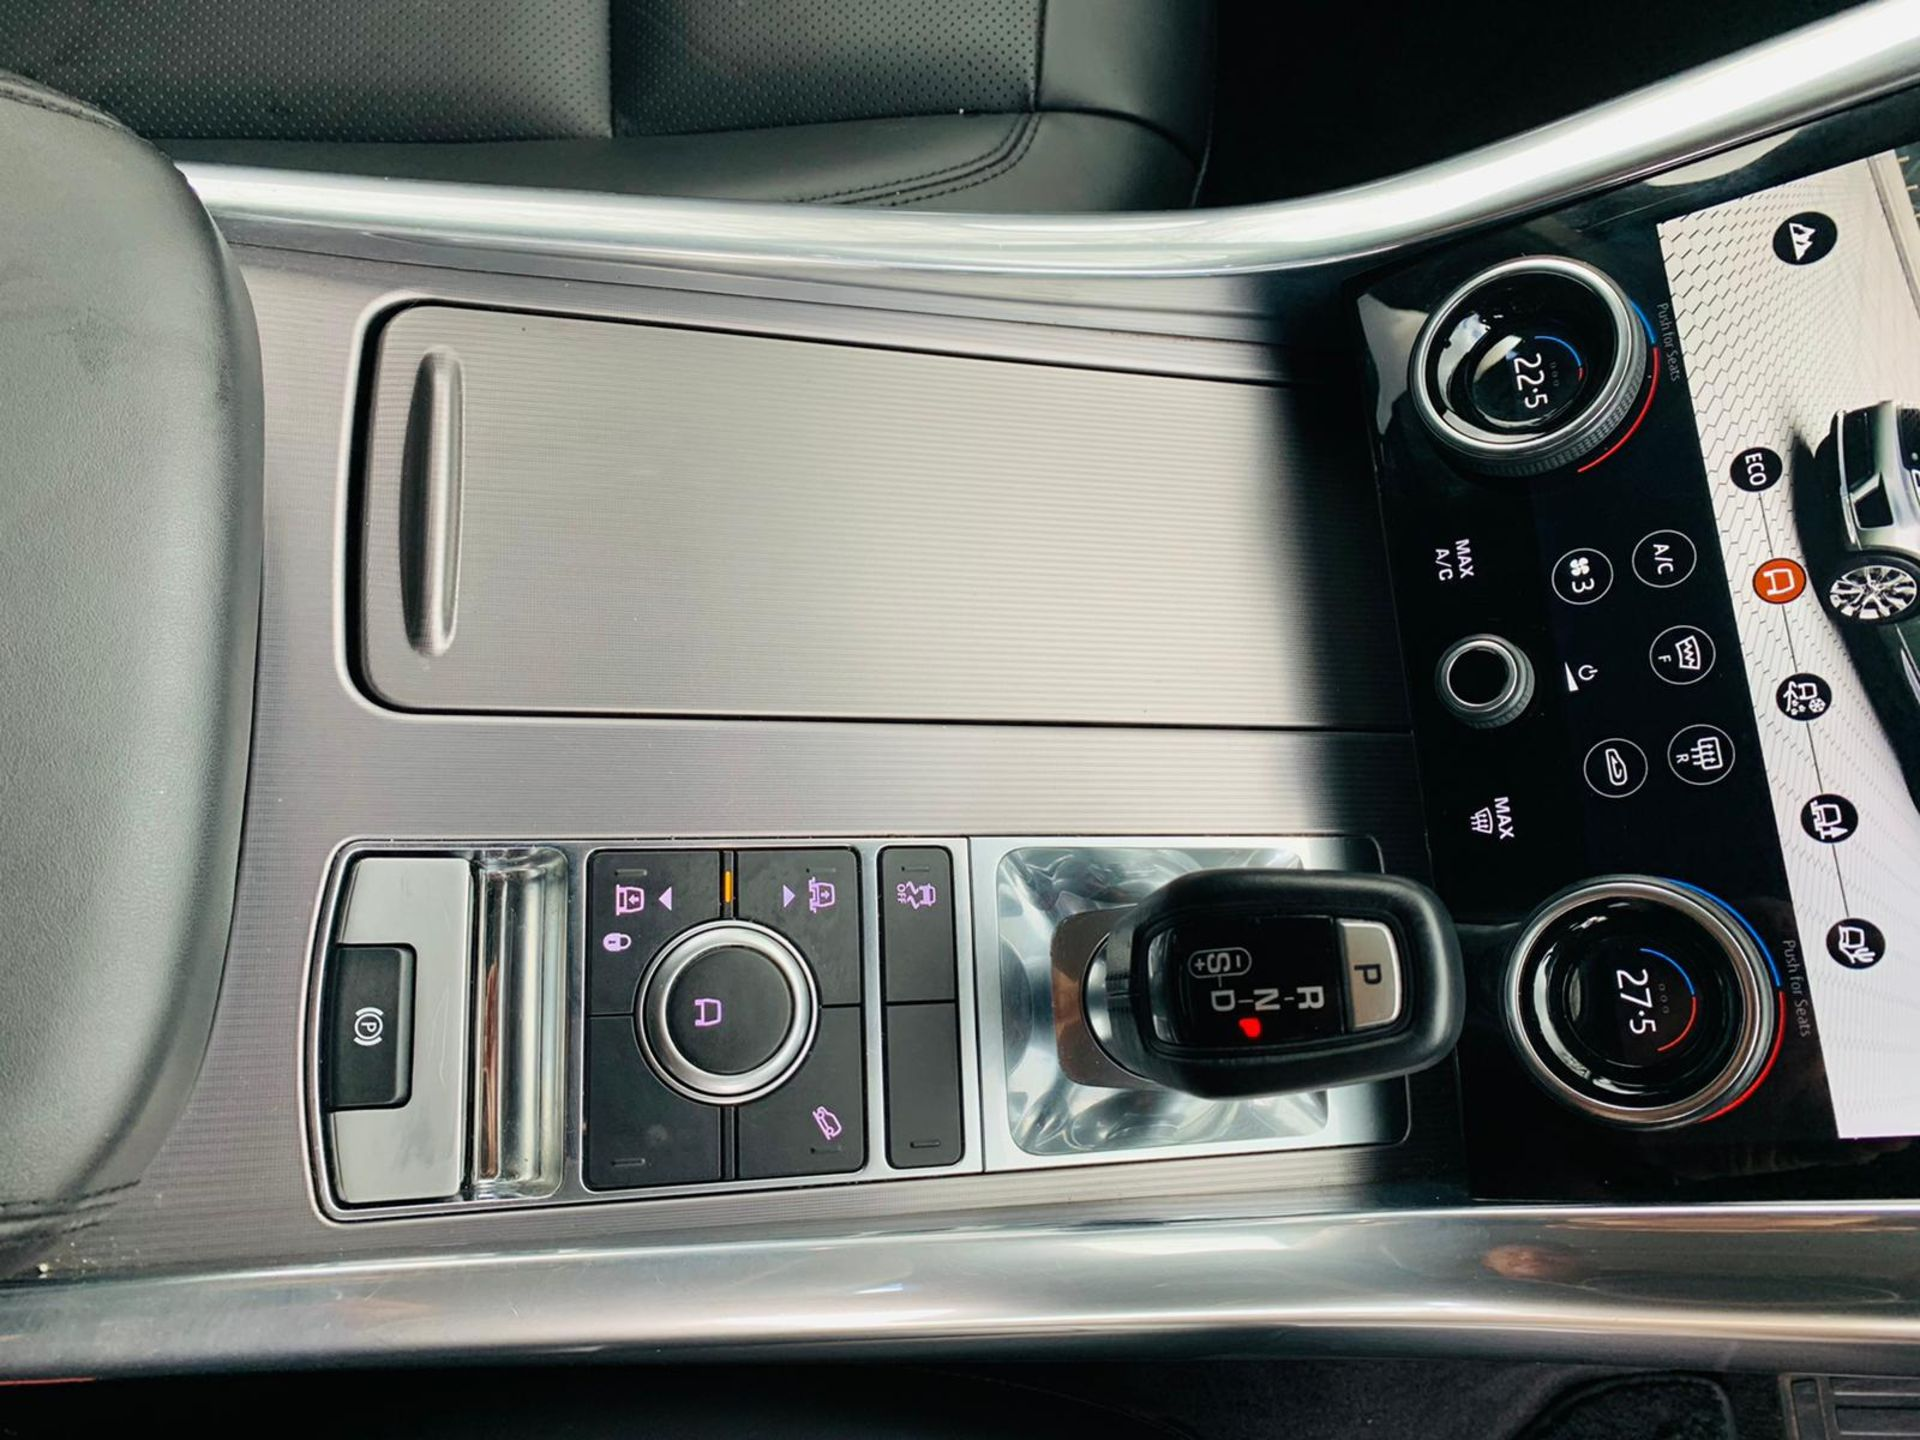 (RESERVE MET) Range Rover Sport 3.0 SDV6 HSE Auto - 2019 - 1 Keeper From New - Virtual Cockpit - - Image 33 of 42